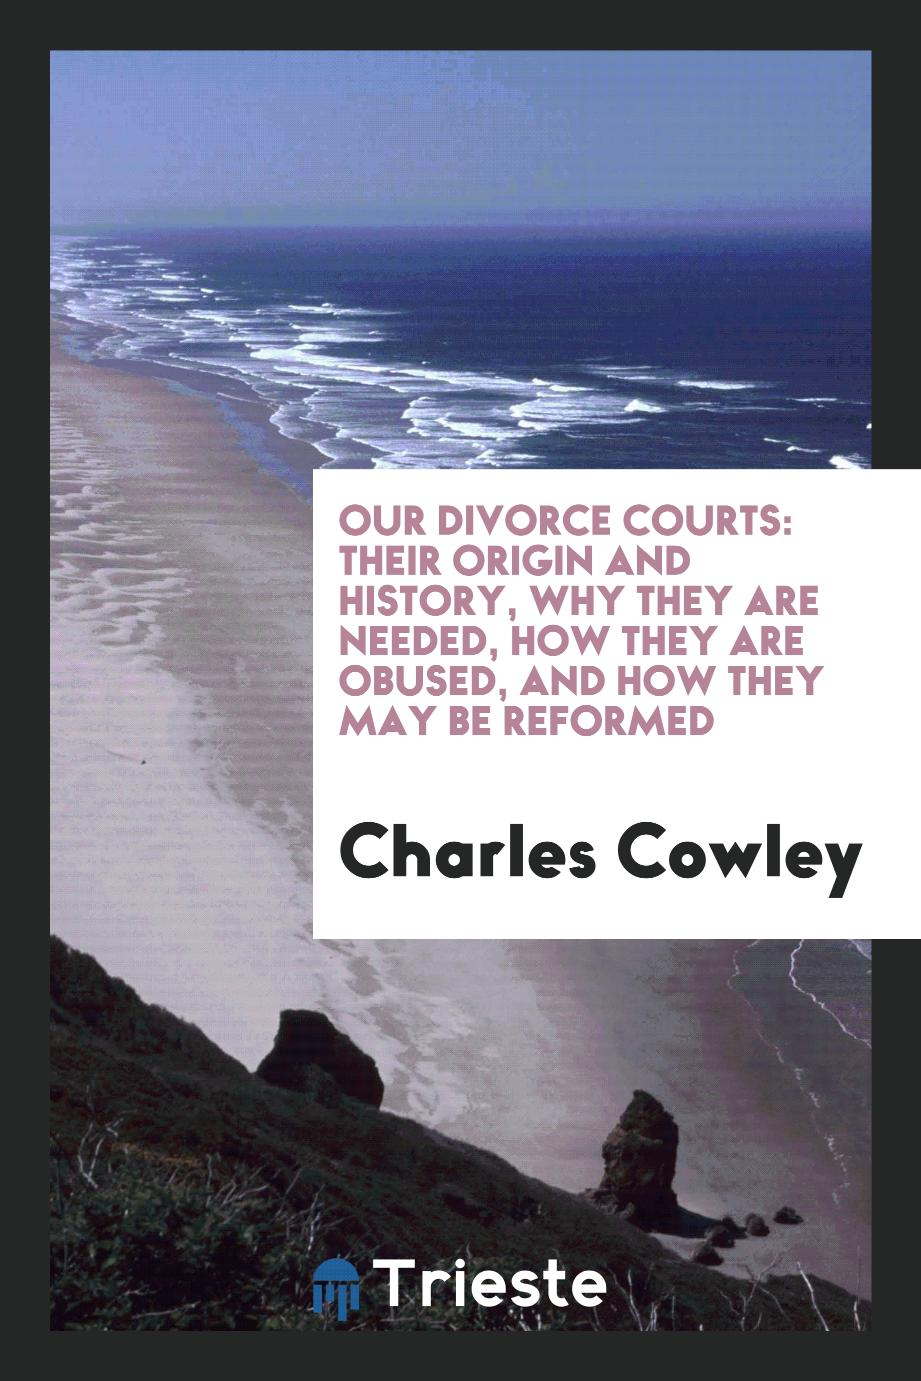 Our Divorce Courts: Their Origin and History, why They are Needed, how They are obused, and how they may be reformed